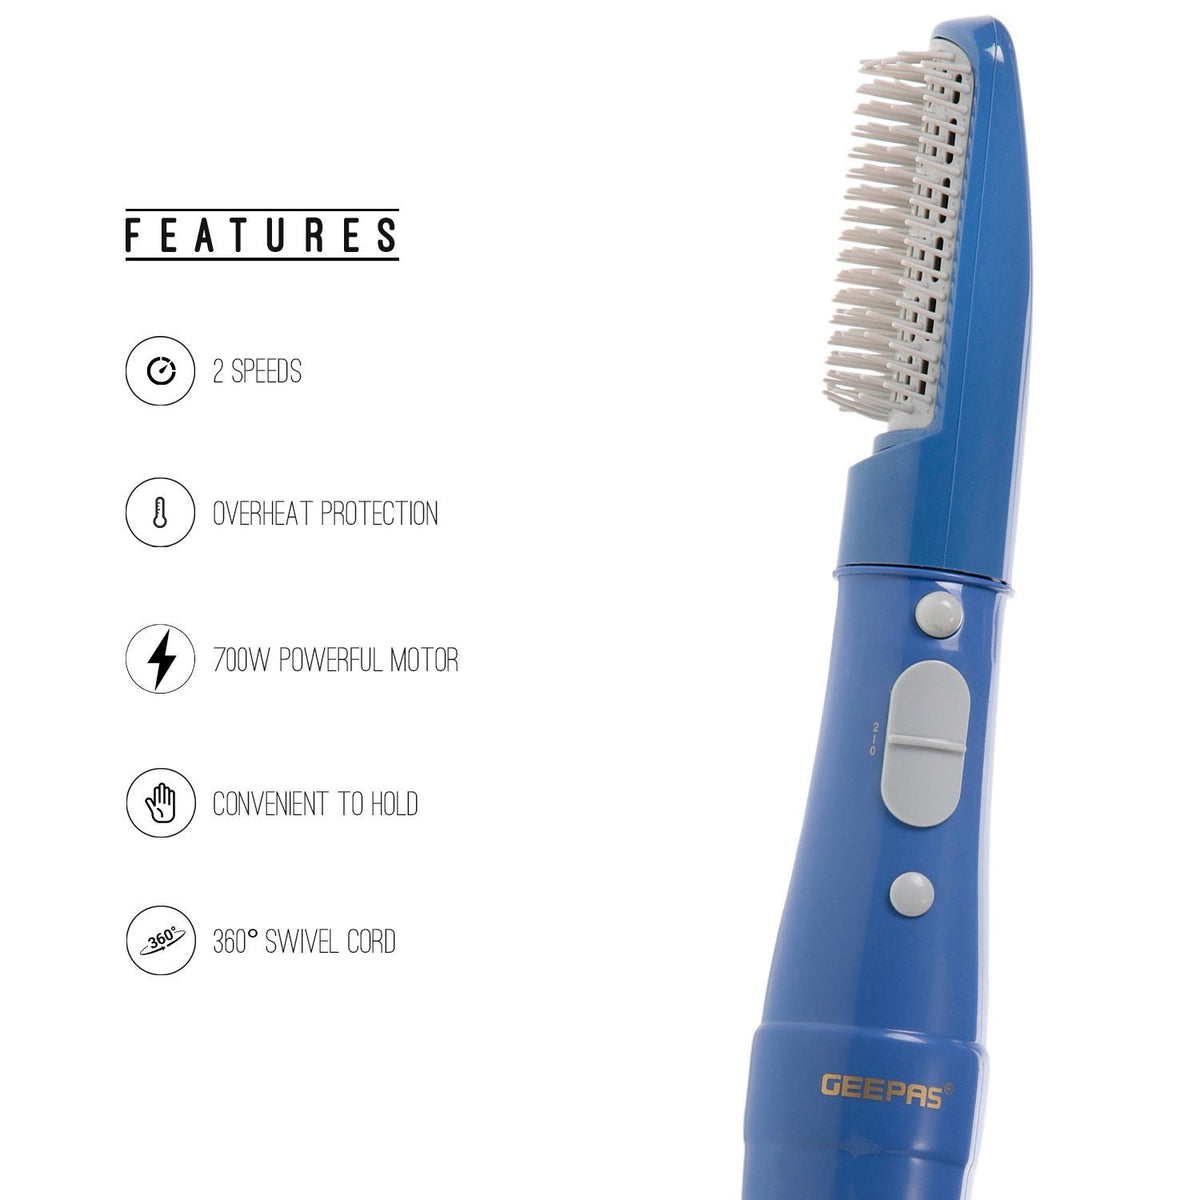 Hair Styler with 2 Speeds Settings | 700W |360° Swivel Cord